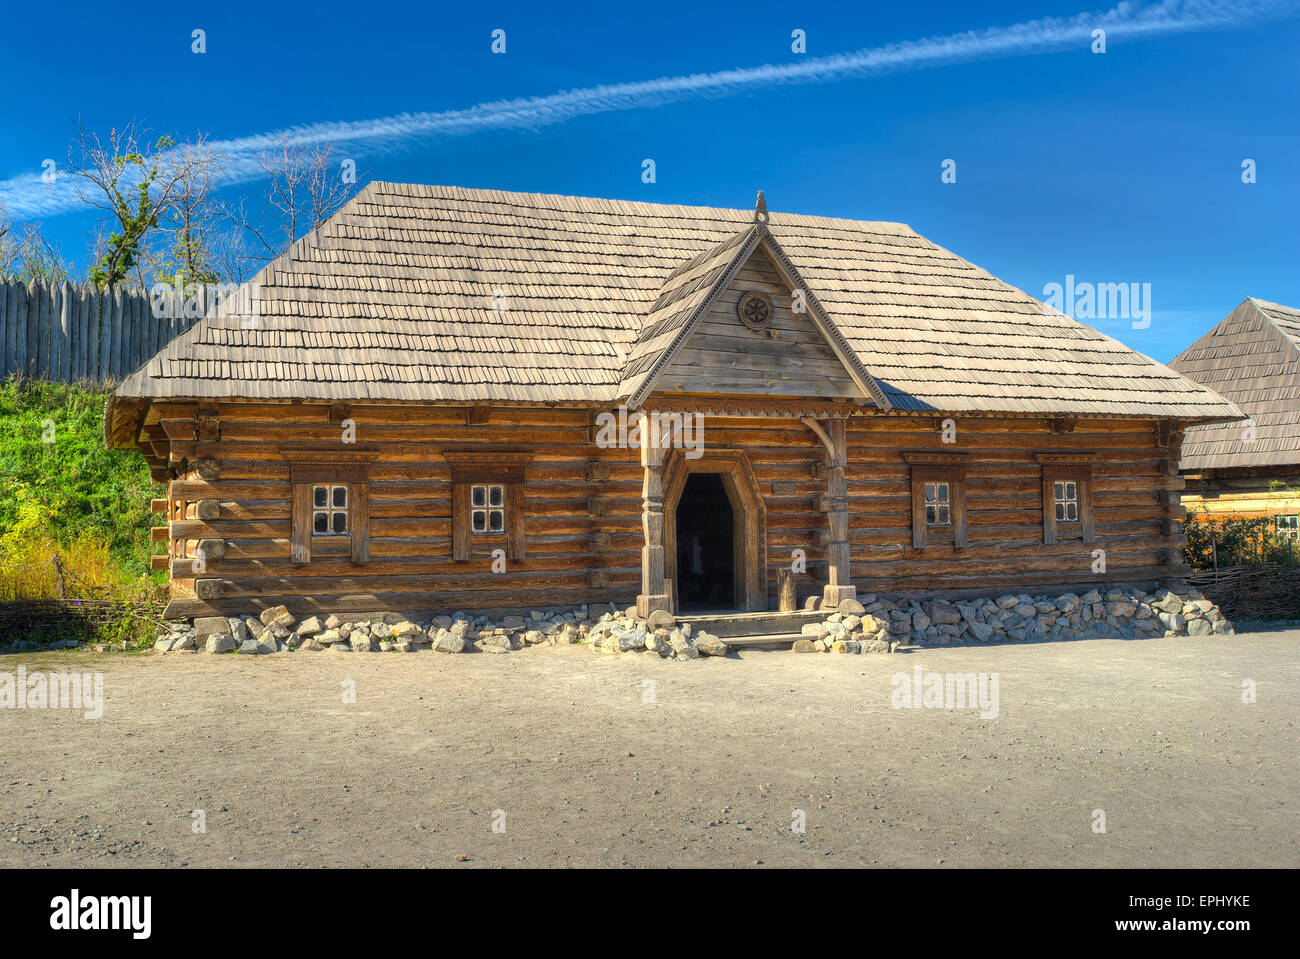 Old Log House Stock Photos Amp Old Log House Stock Images